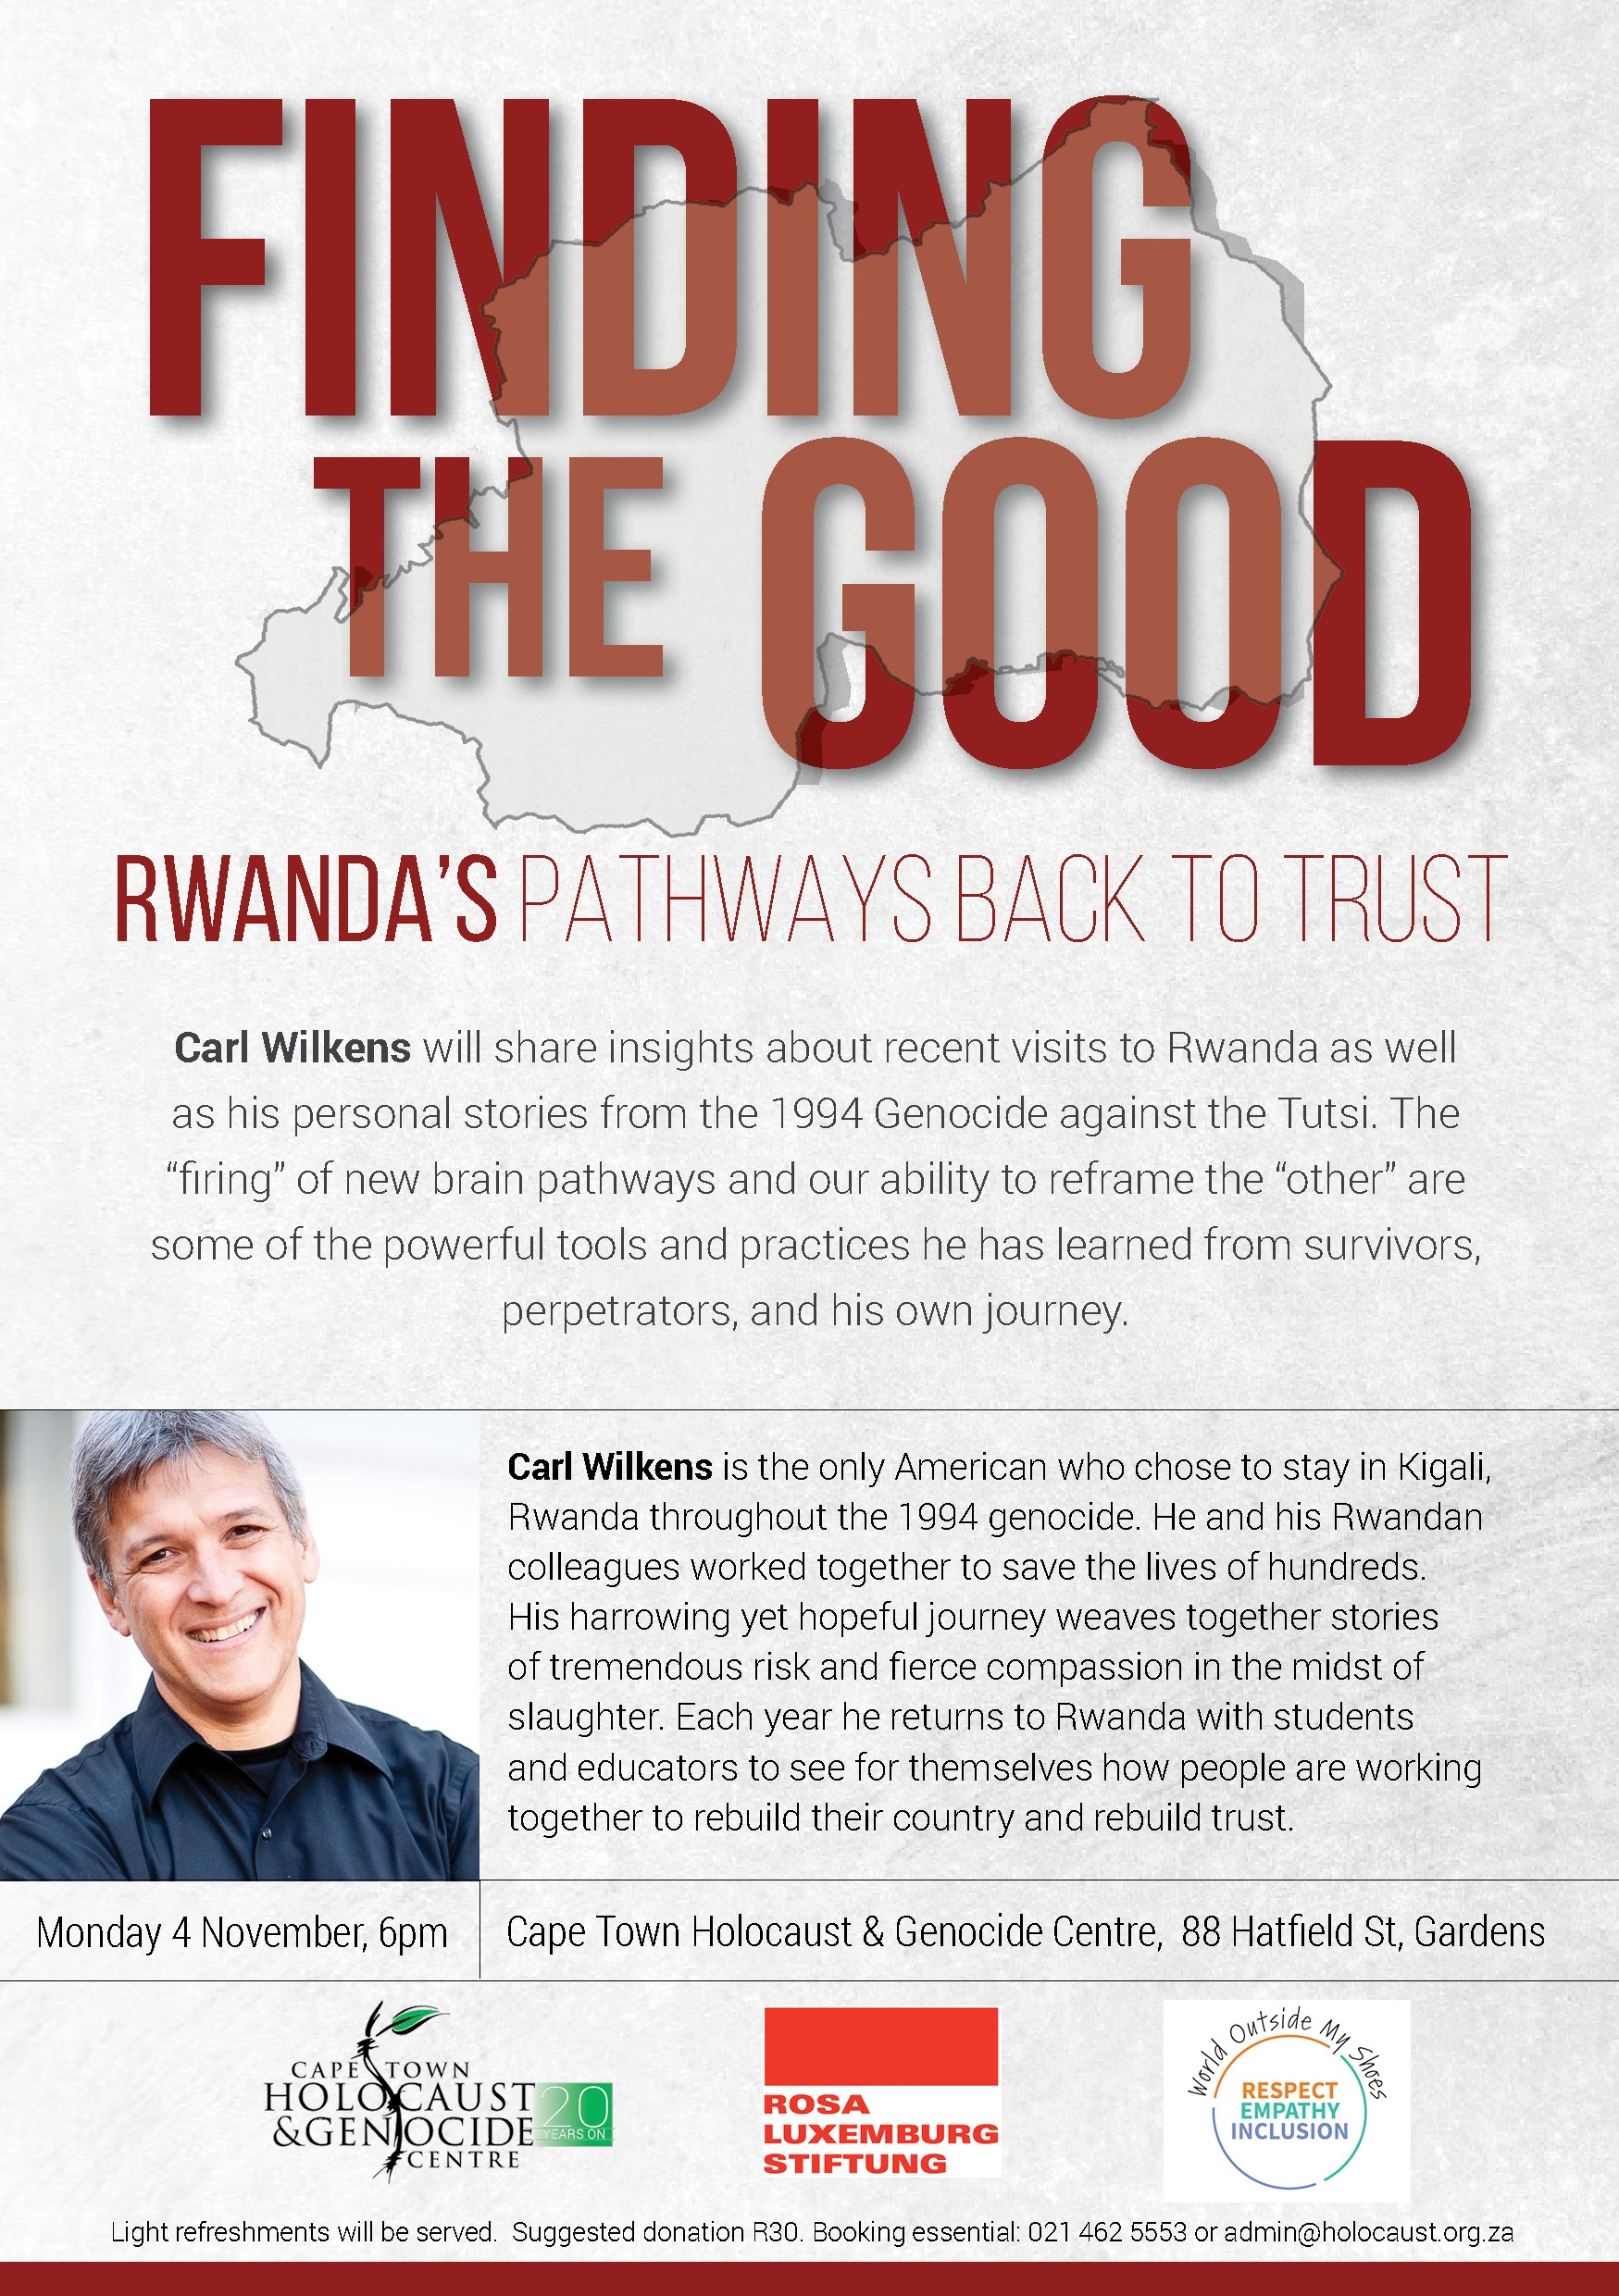 Finding the Good-Rwanda's Pathways Back to Trust by Carl-Wilkens CTHGC